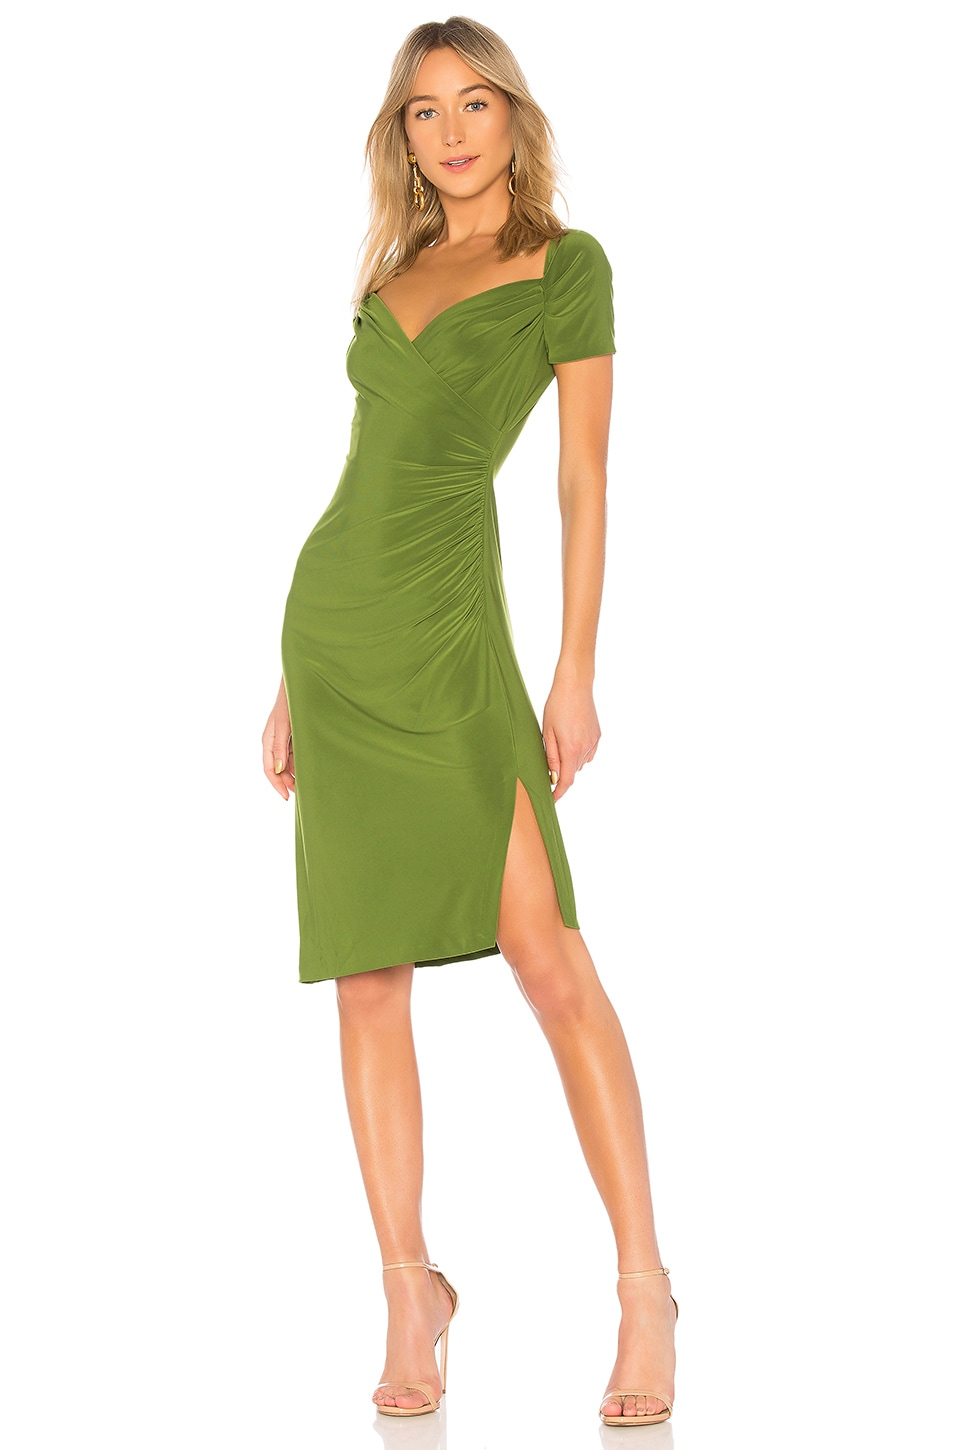 Sweetheart Side Drape Dress in Green Norma Kamali GhfTAA42d